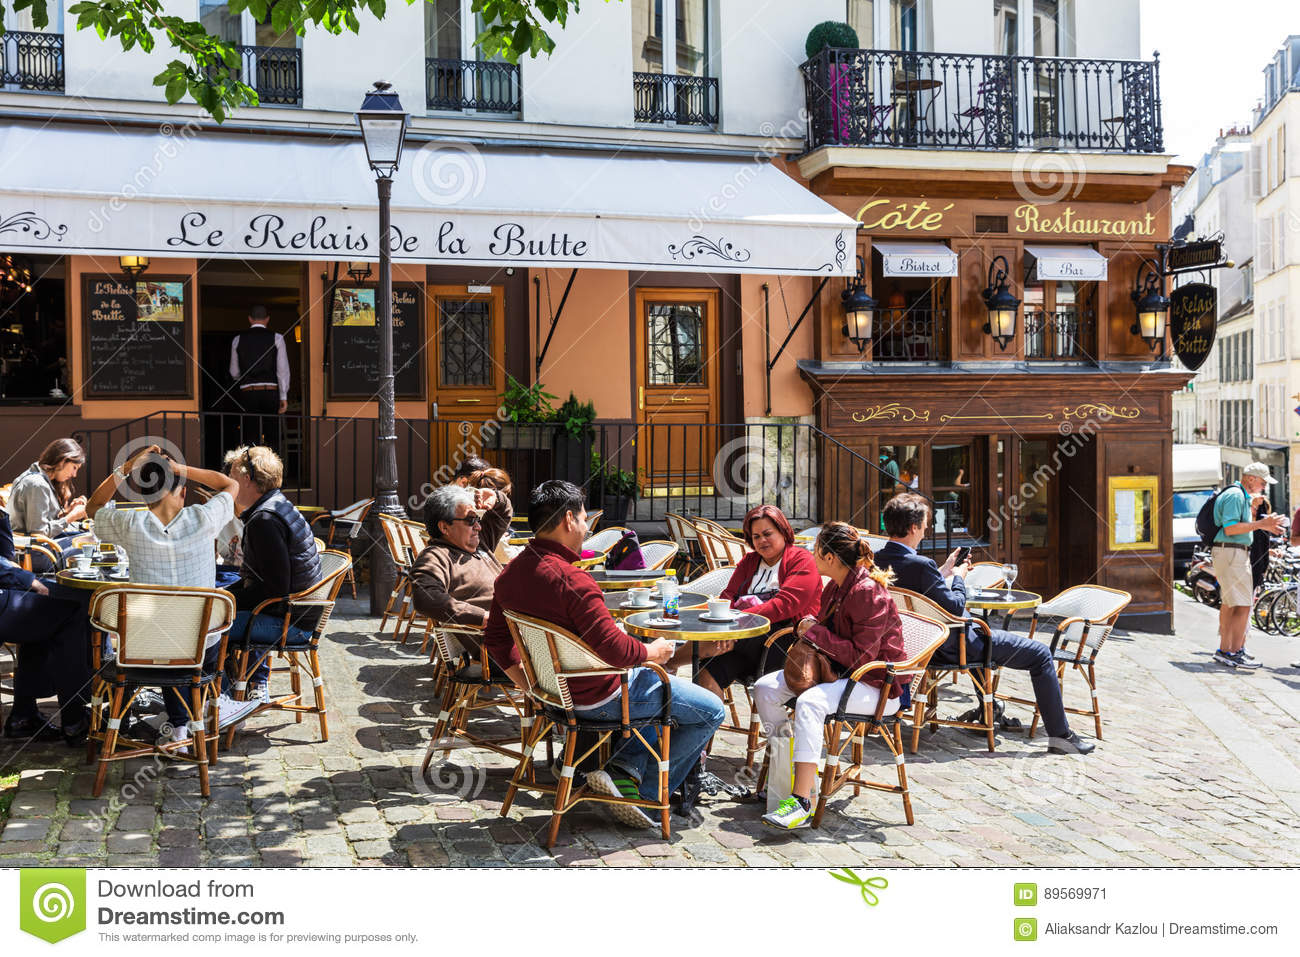 A Traditional Restaurant In The Butte Montmartre Paris France Editorial Photo Image Of Outside Outdoor 89569971